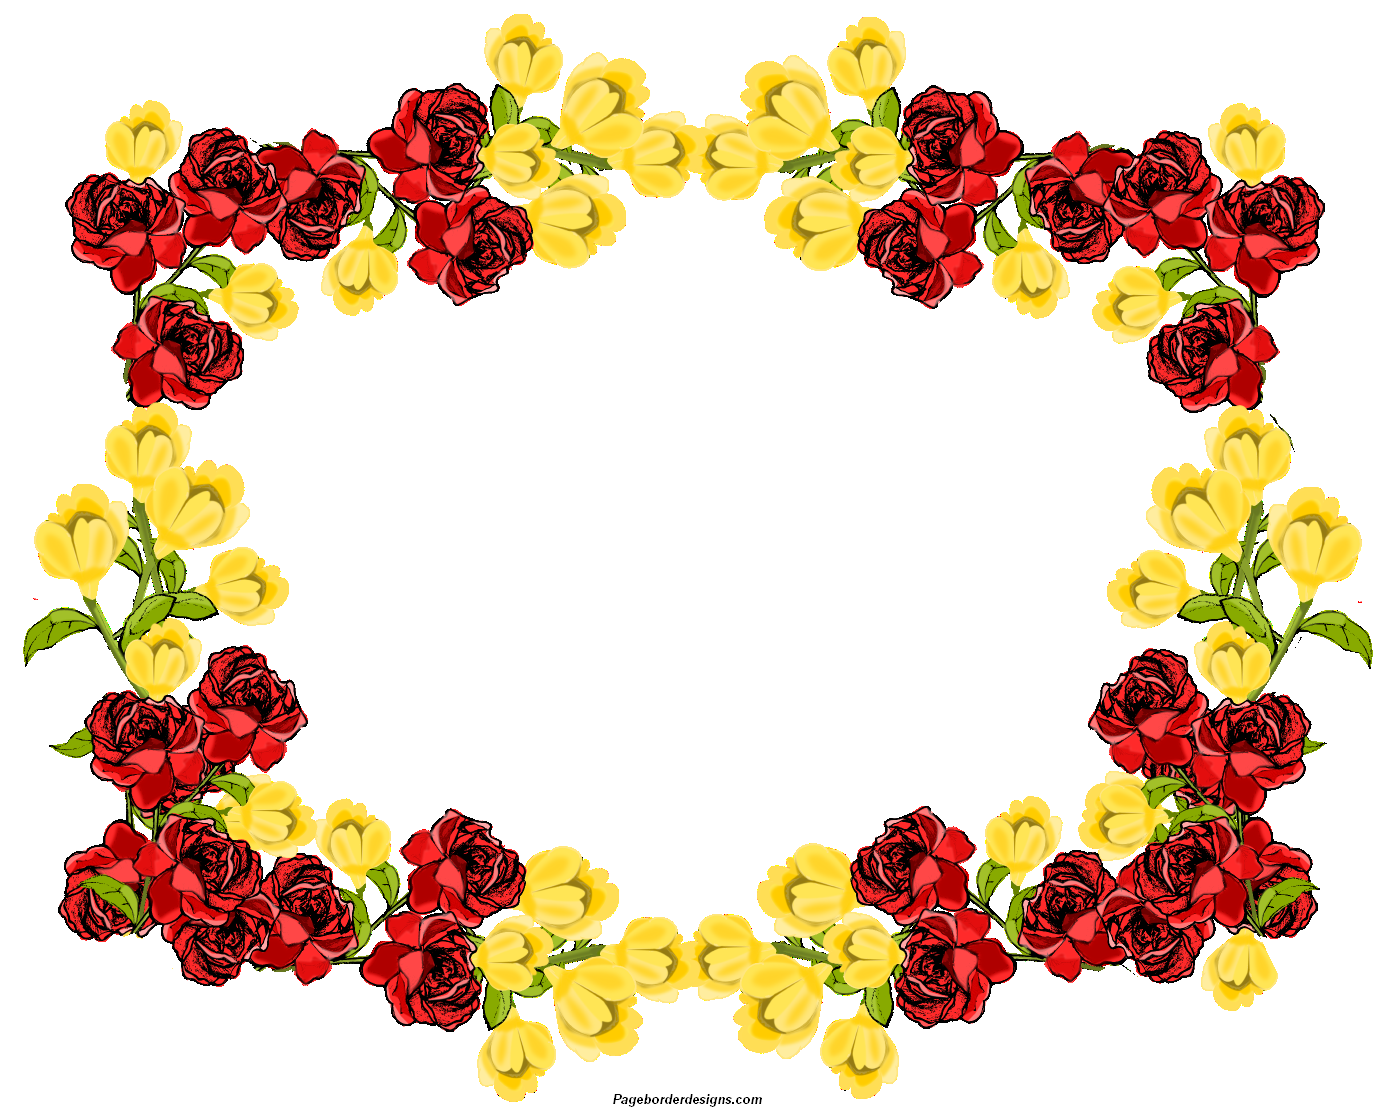 Beautiful Red and yellow Clip Art Flowers Frame Border Design 2014.